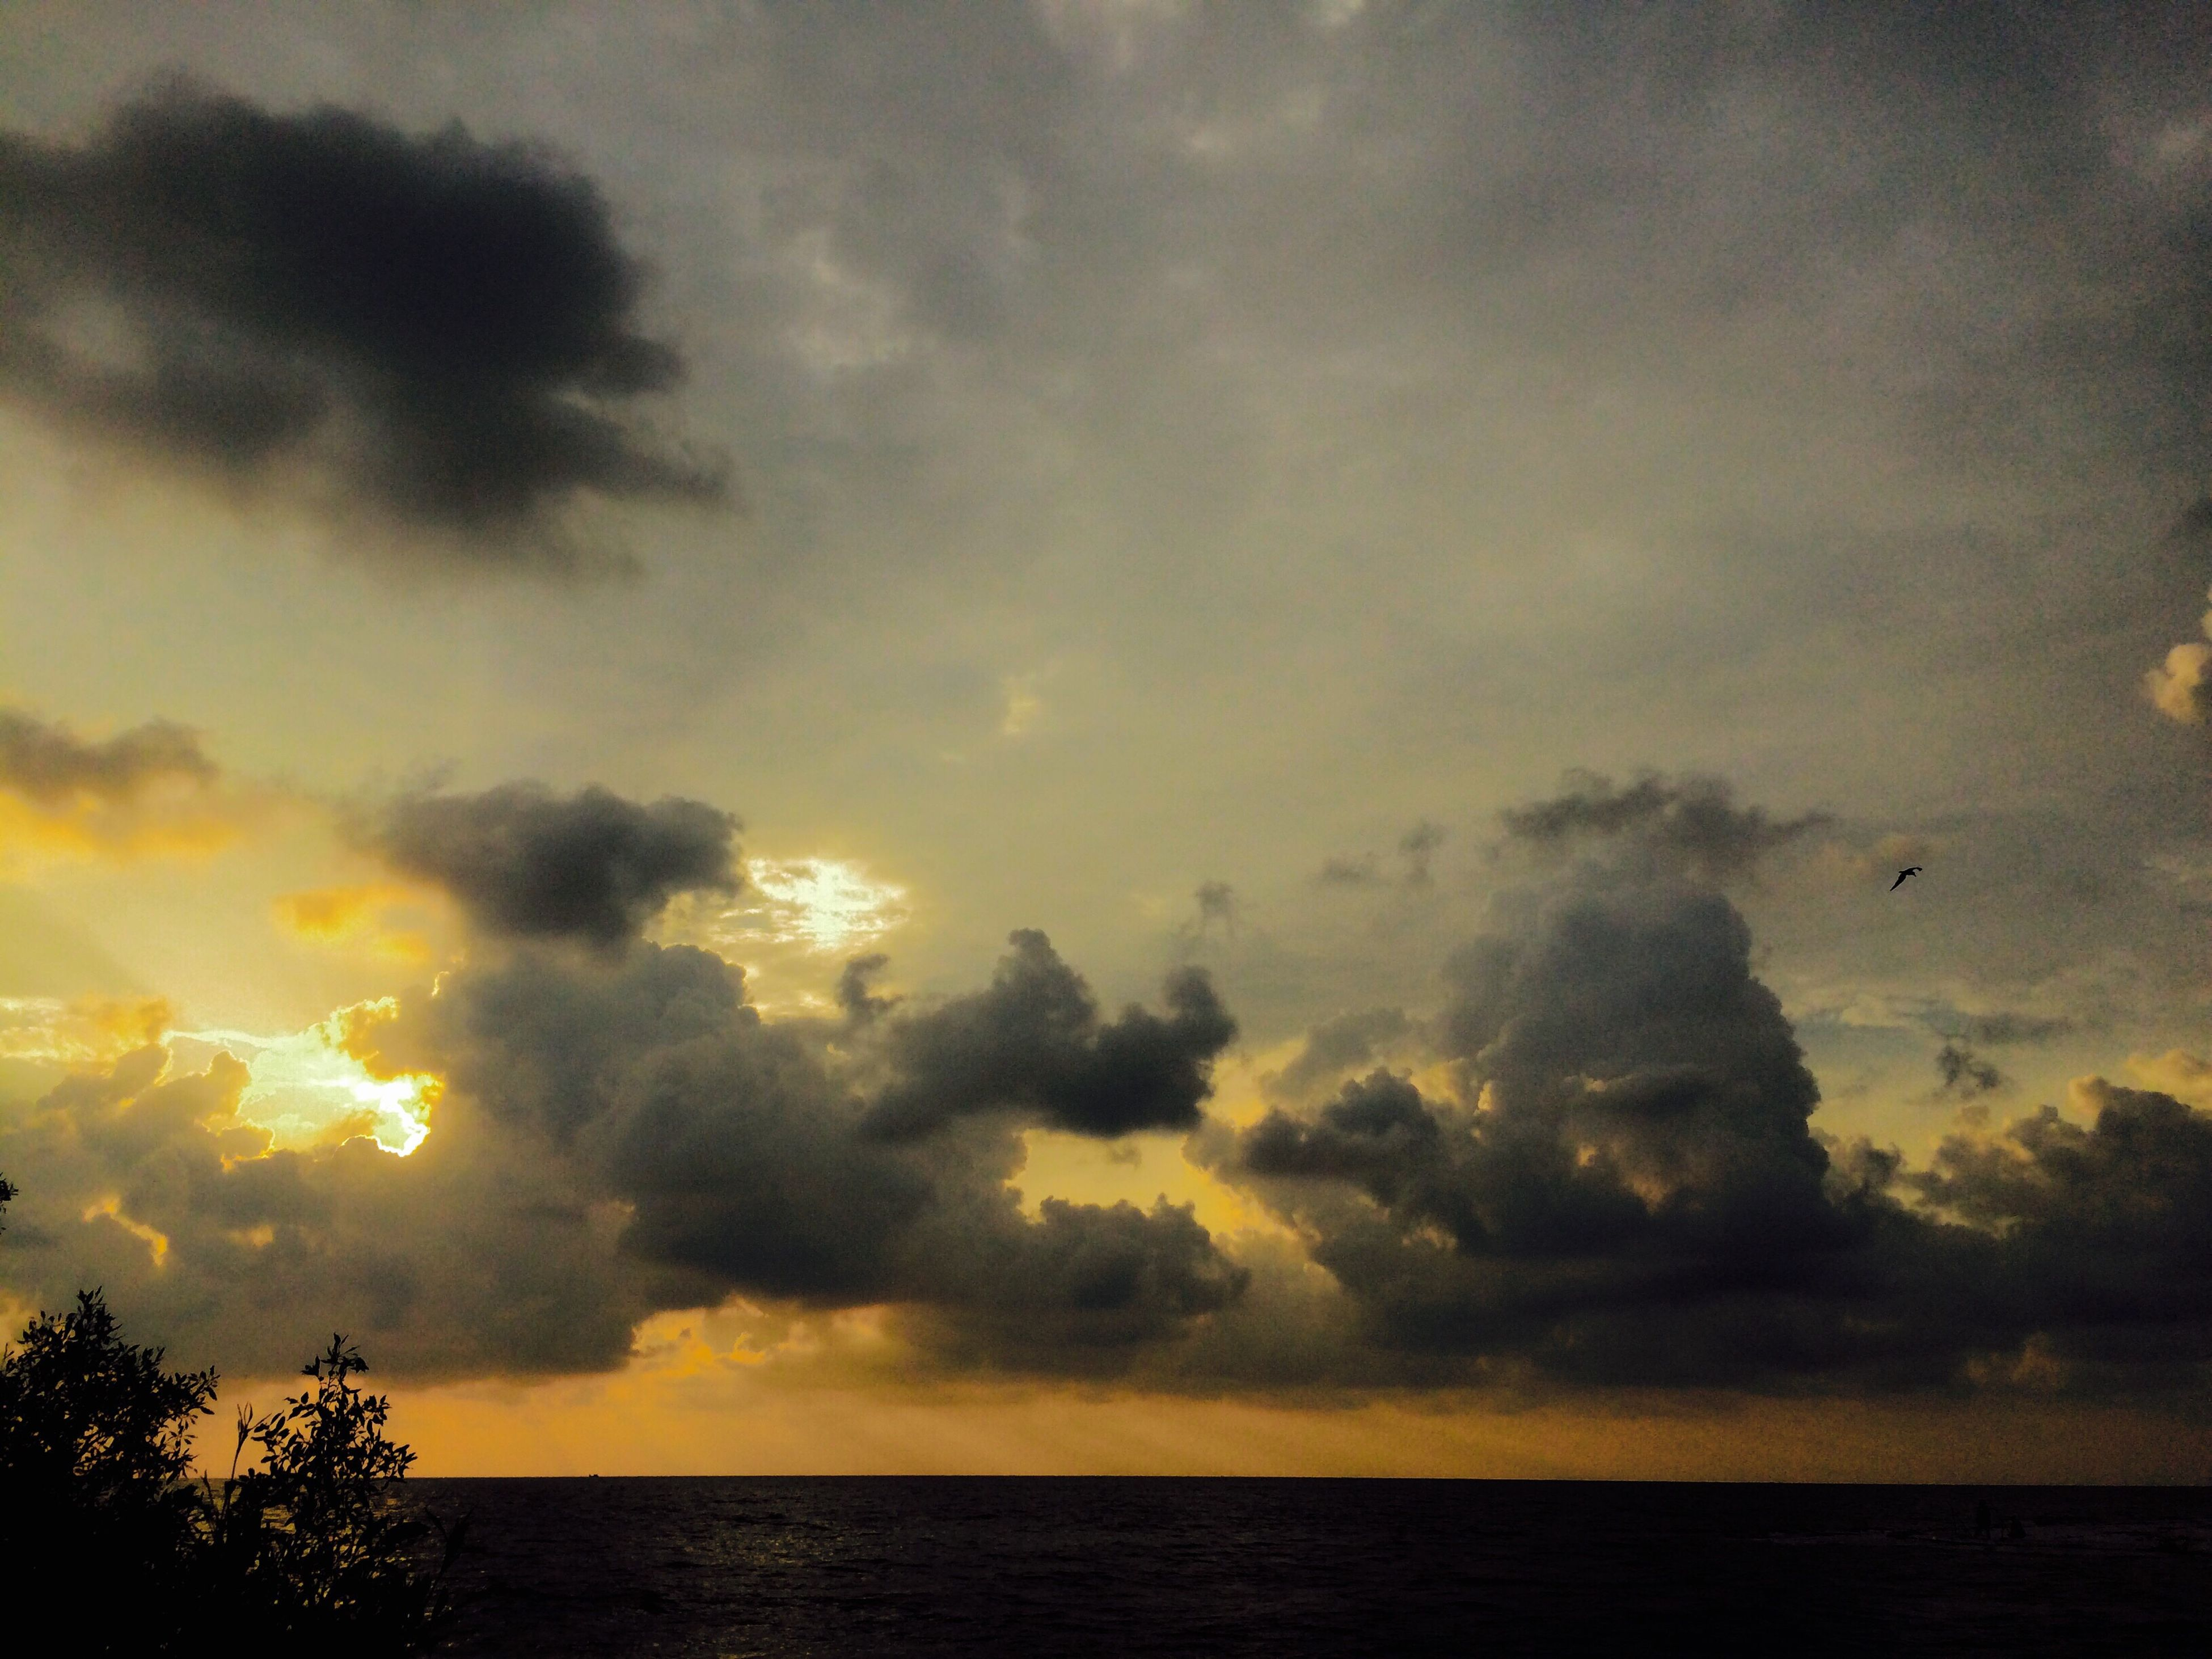 sunset, dramatic sky, scenics, sky, nature, water, sea, beauty in nature, cloud - sky, no people, outdoors, tranquil scene, silhouette, tranquility, beach, day